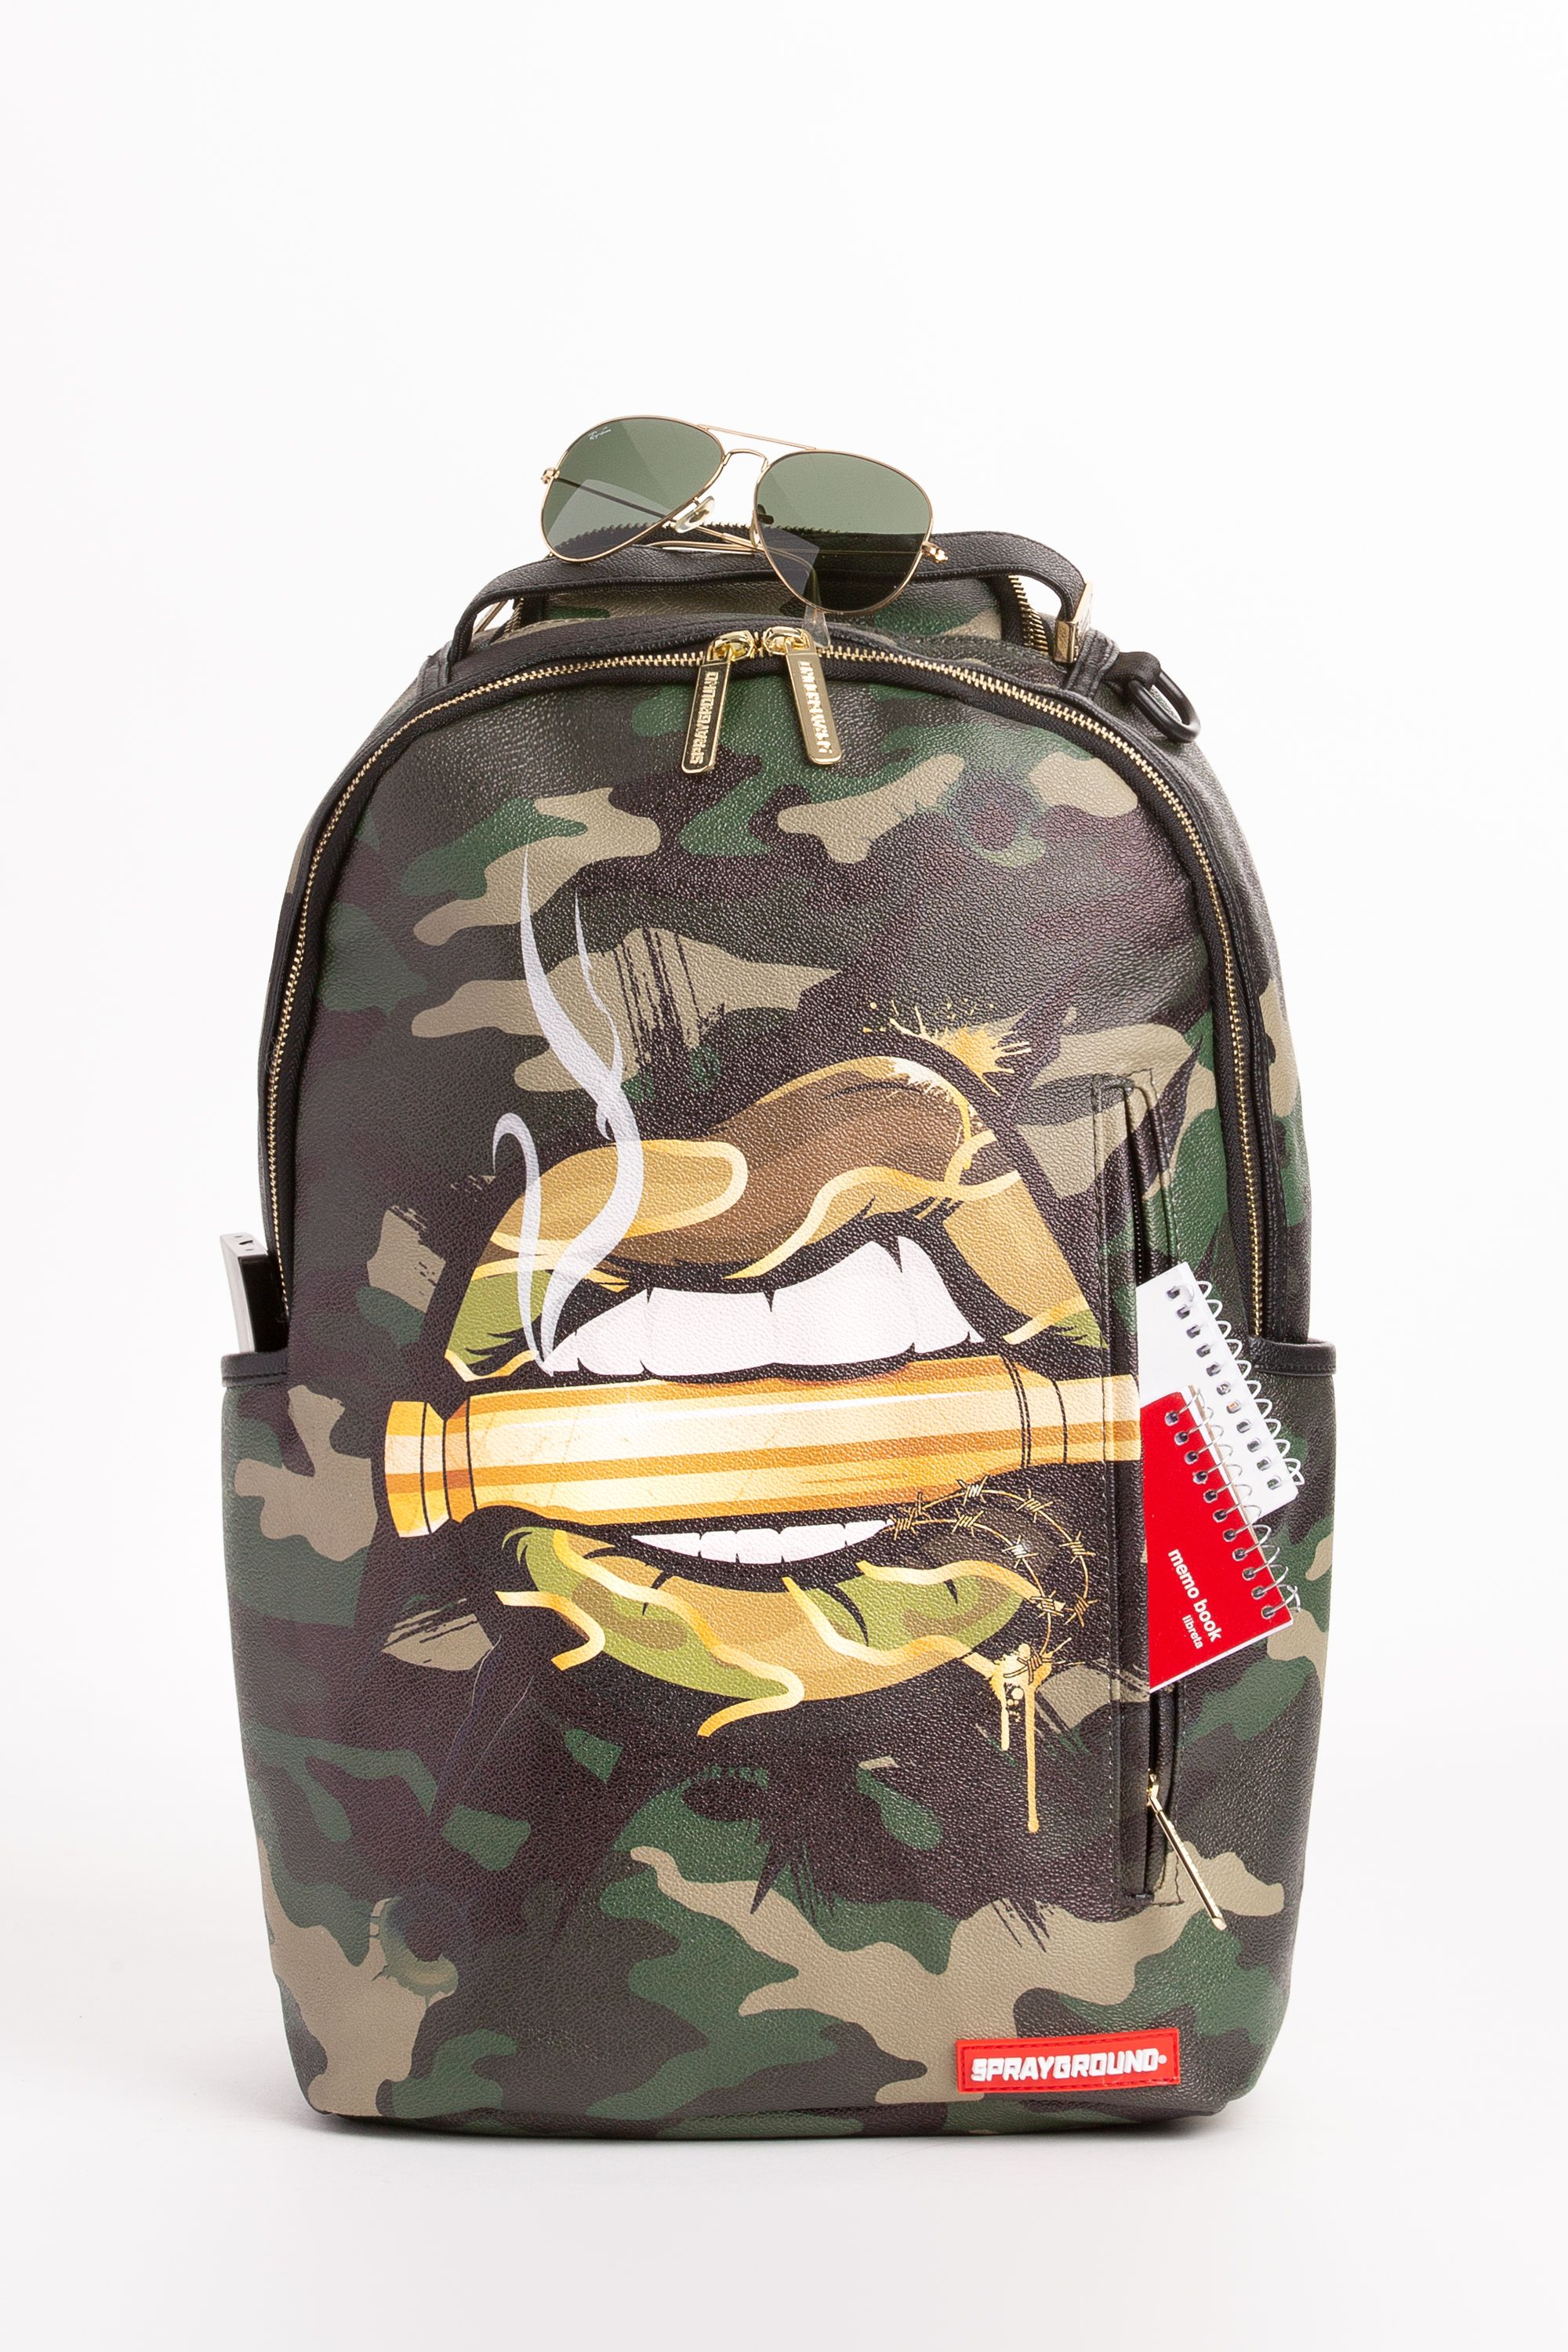 6e4f4858fd8e Sprayground Army Lips Backpack Home Backpack Brands Sprayground ...